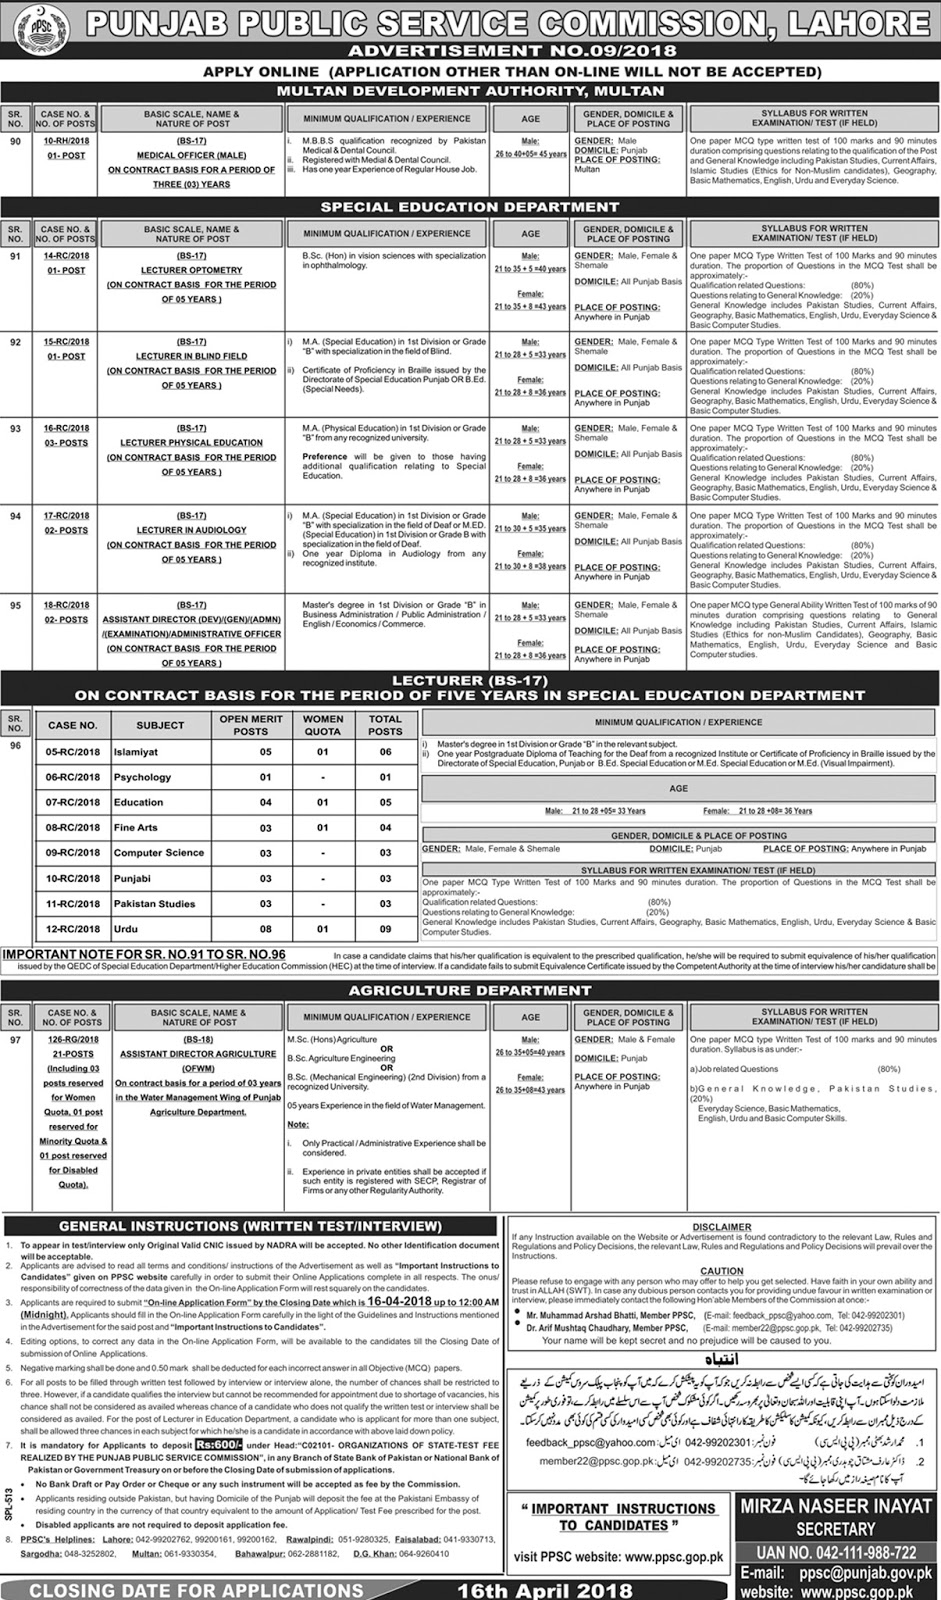 Jobs In Punjab Public Service Commission PPSC April 2018 - Apply Online